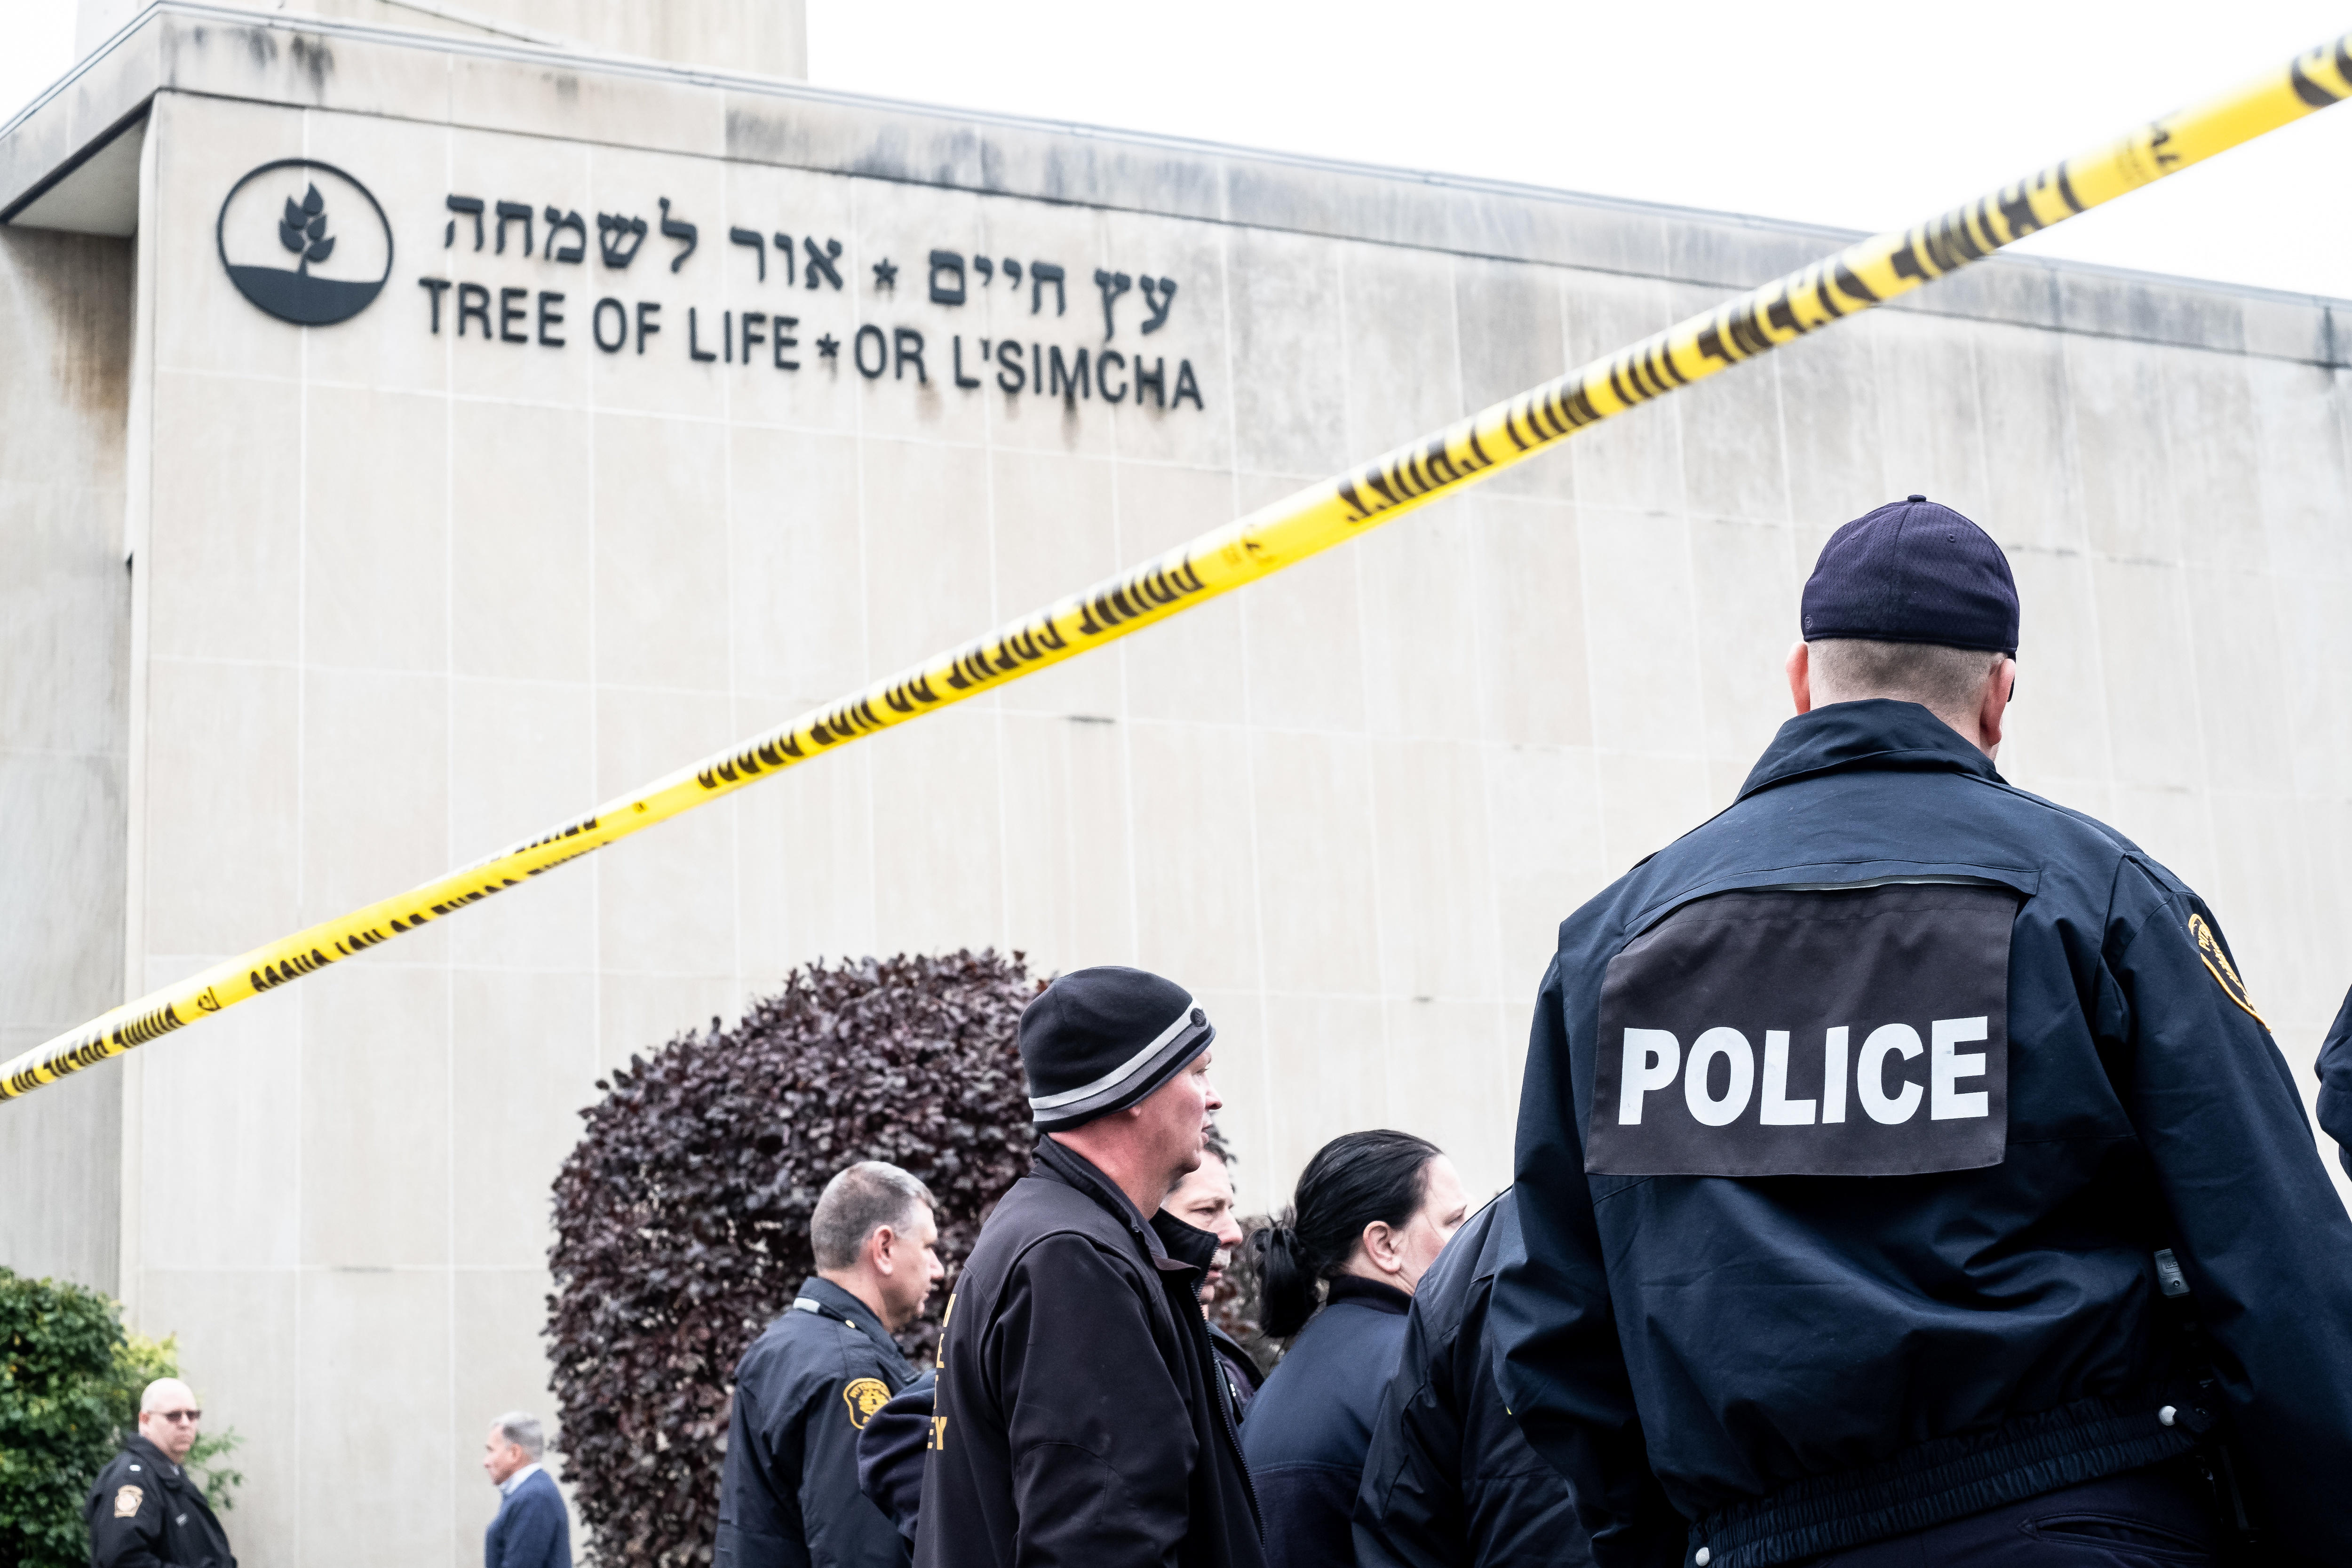 The Tree of Life Synagogue in Pittsburgh.